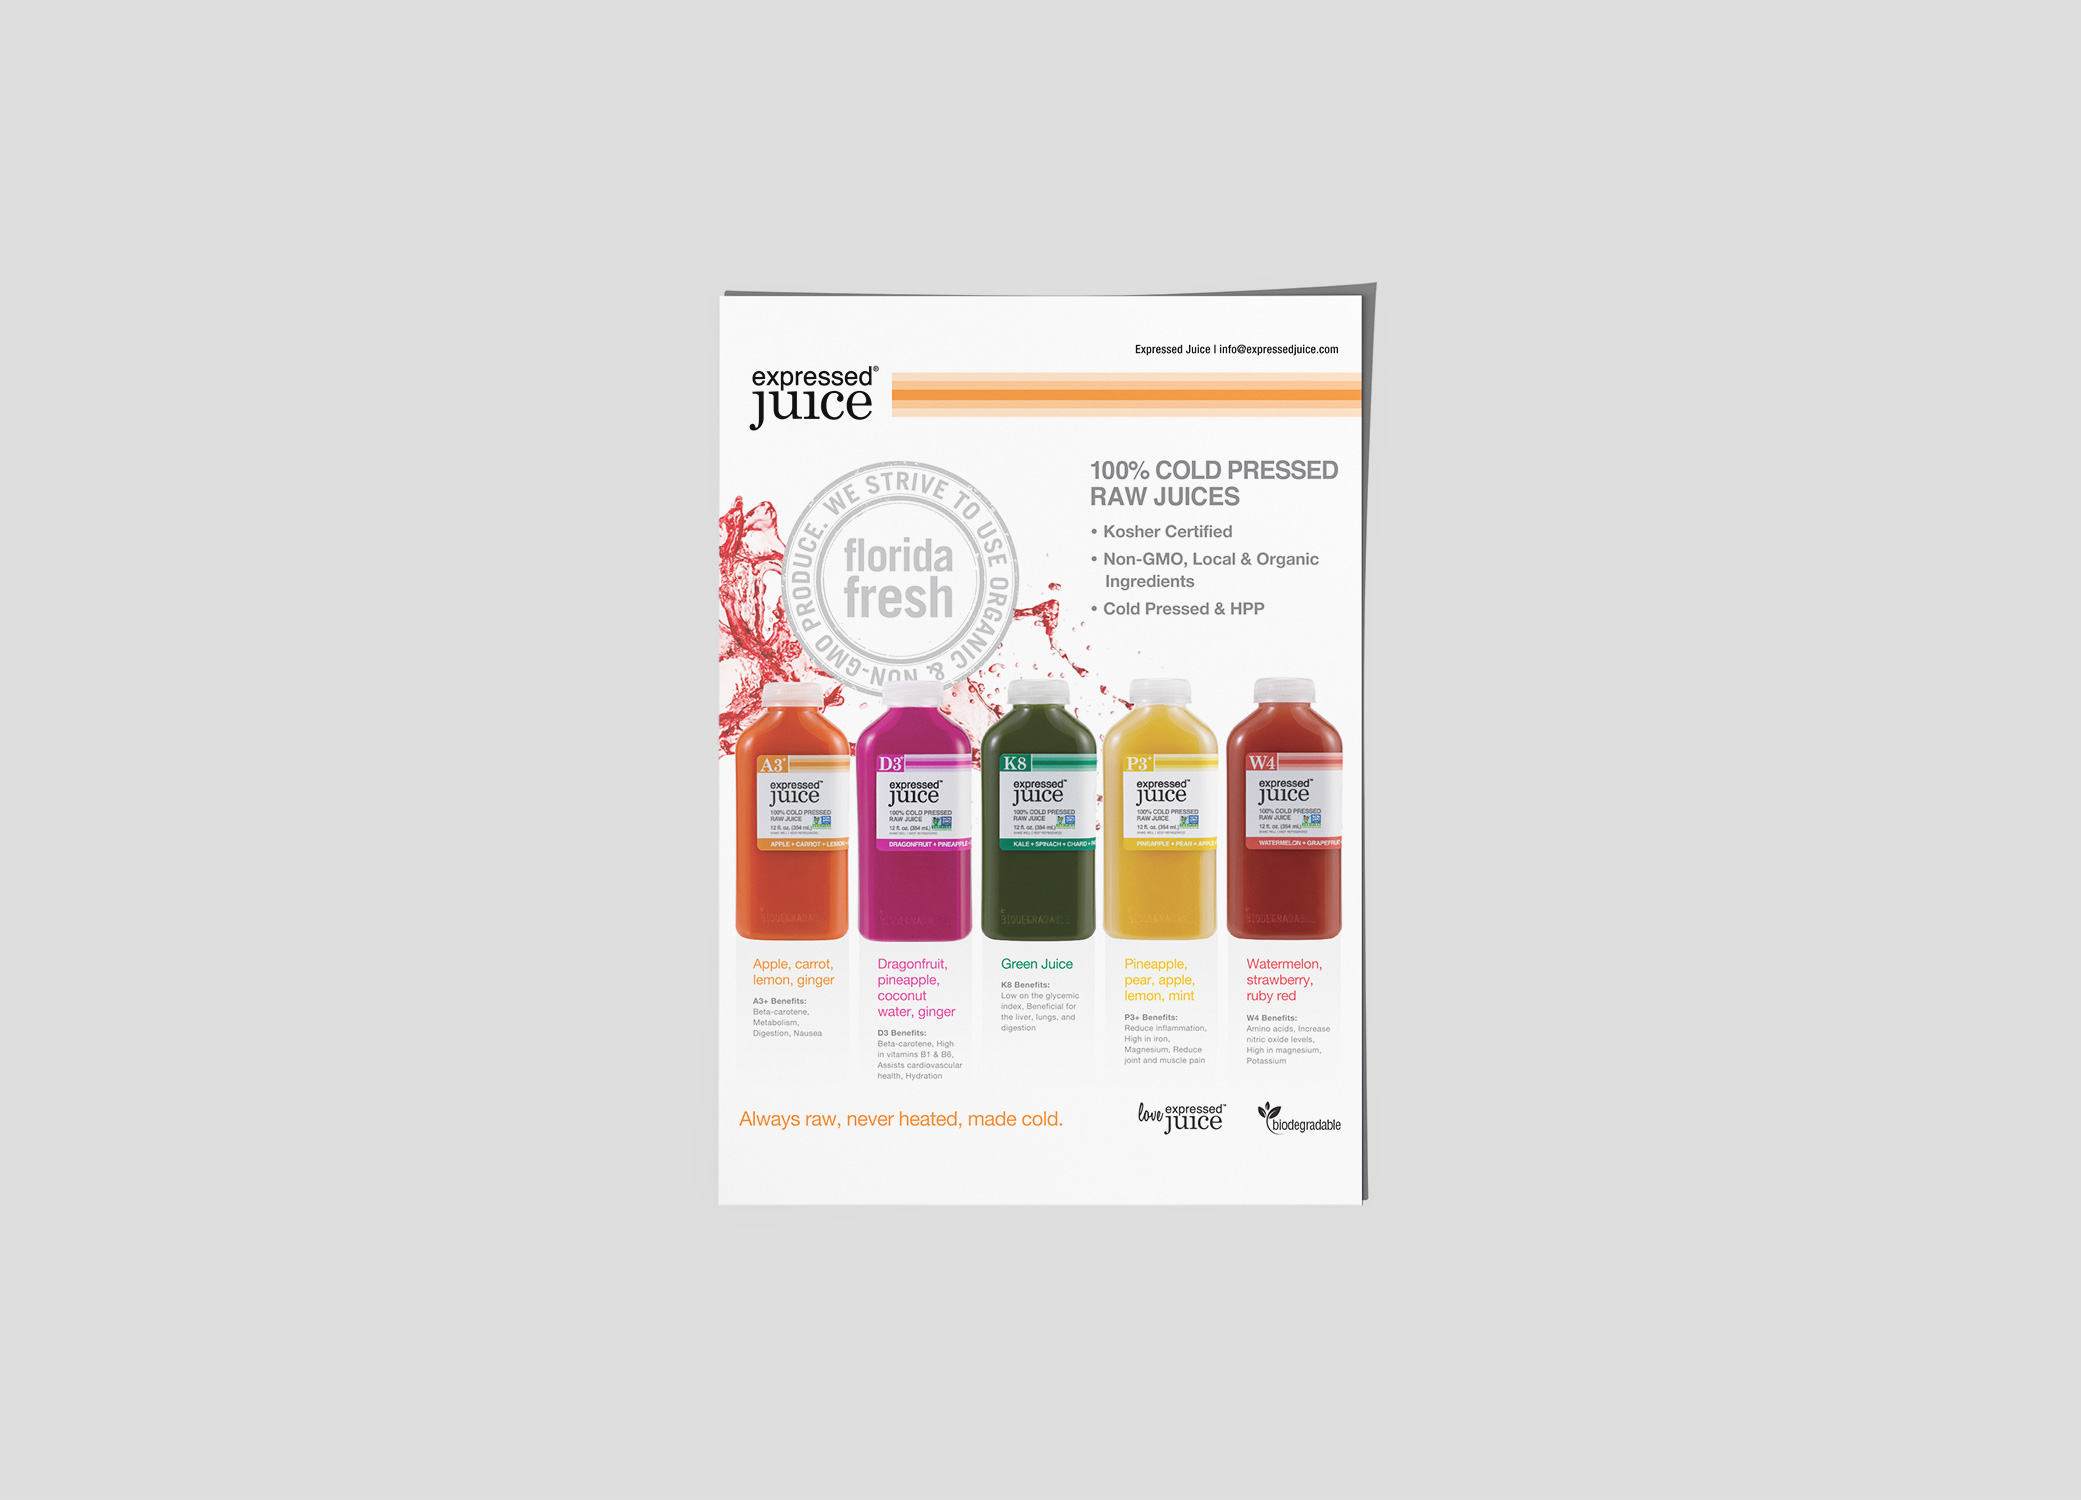 Expressed Juice flyer promoting five different types of cold pressed juices with descriptions about each.